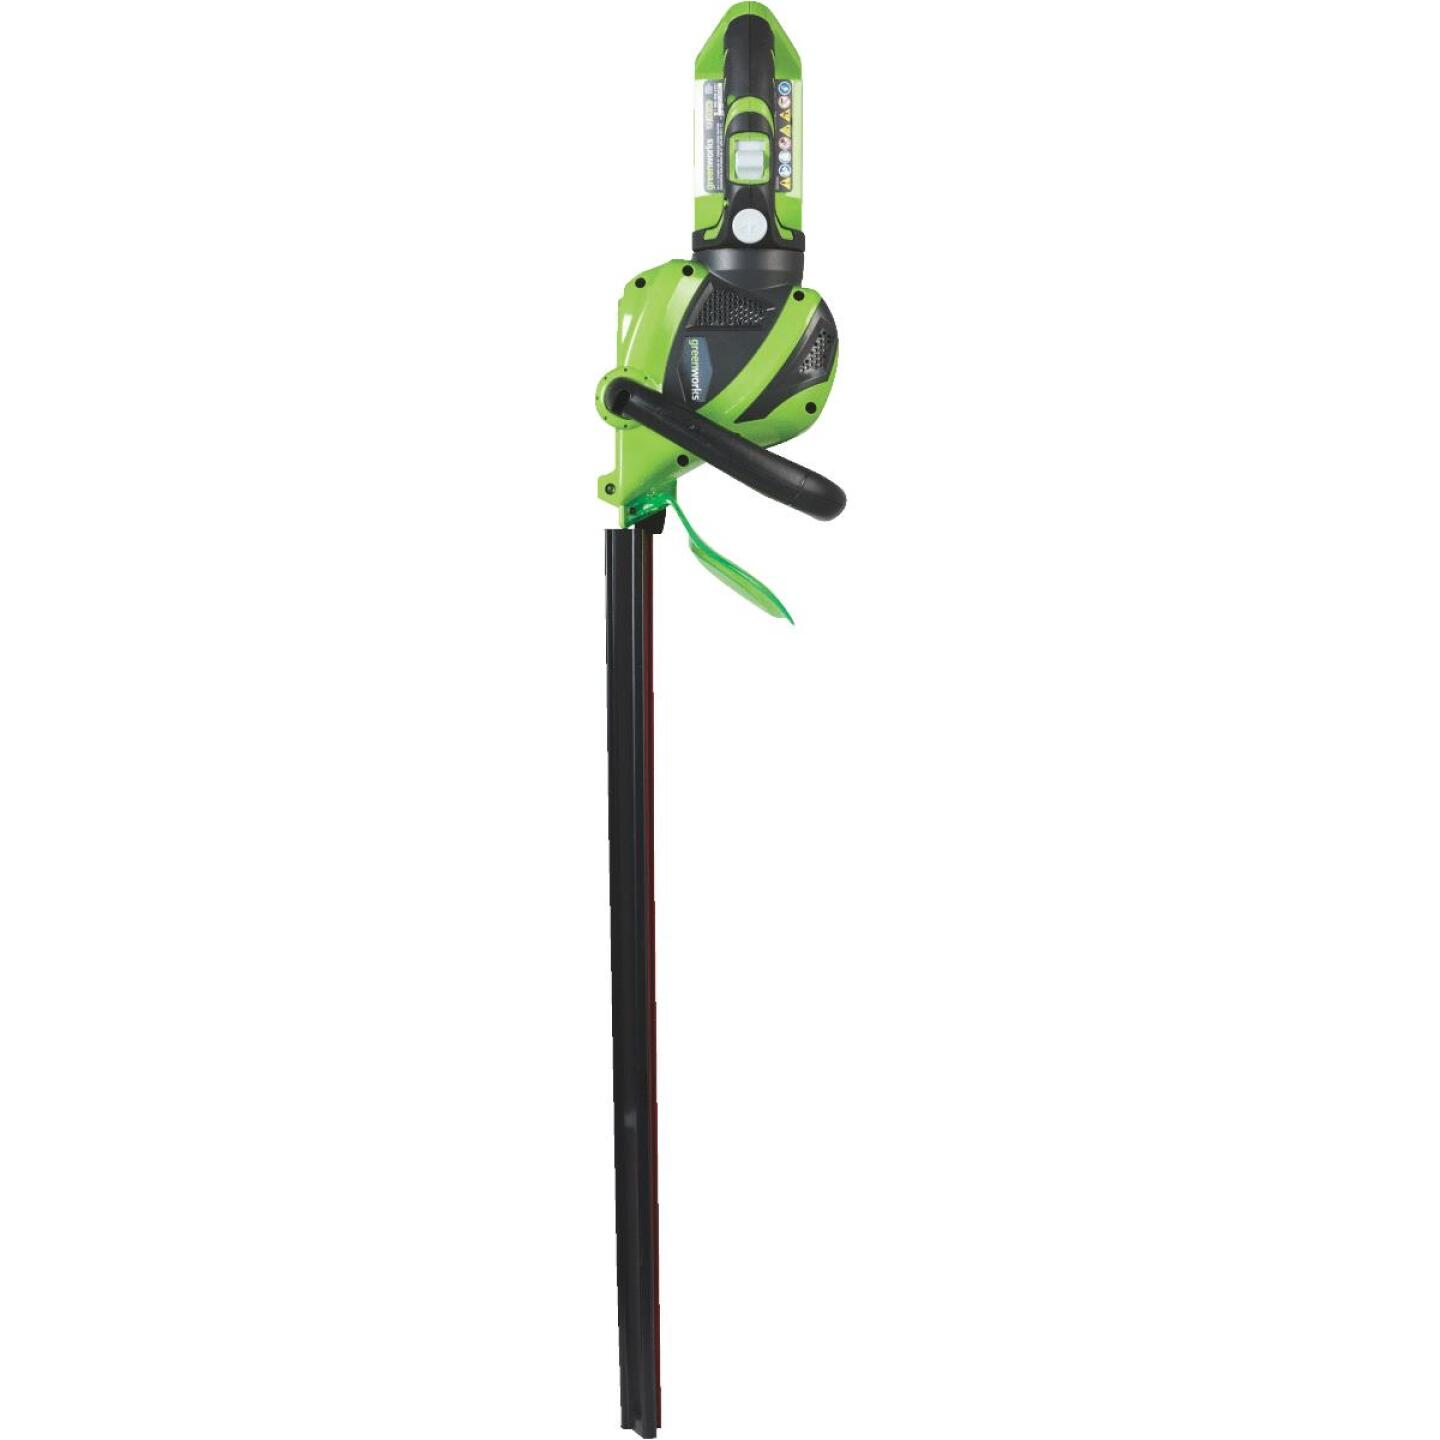 Greenworks G-Max 24 In. 40V Lithium Ion Cordless Hedge Trimmer (Bare Tool) Image 4